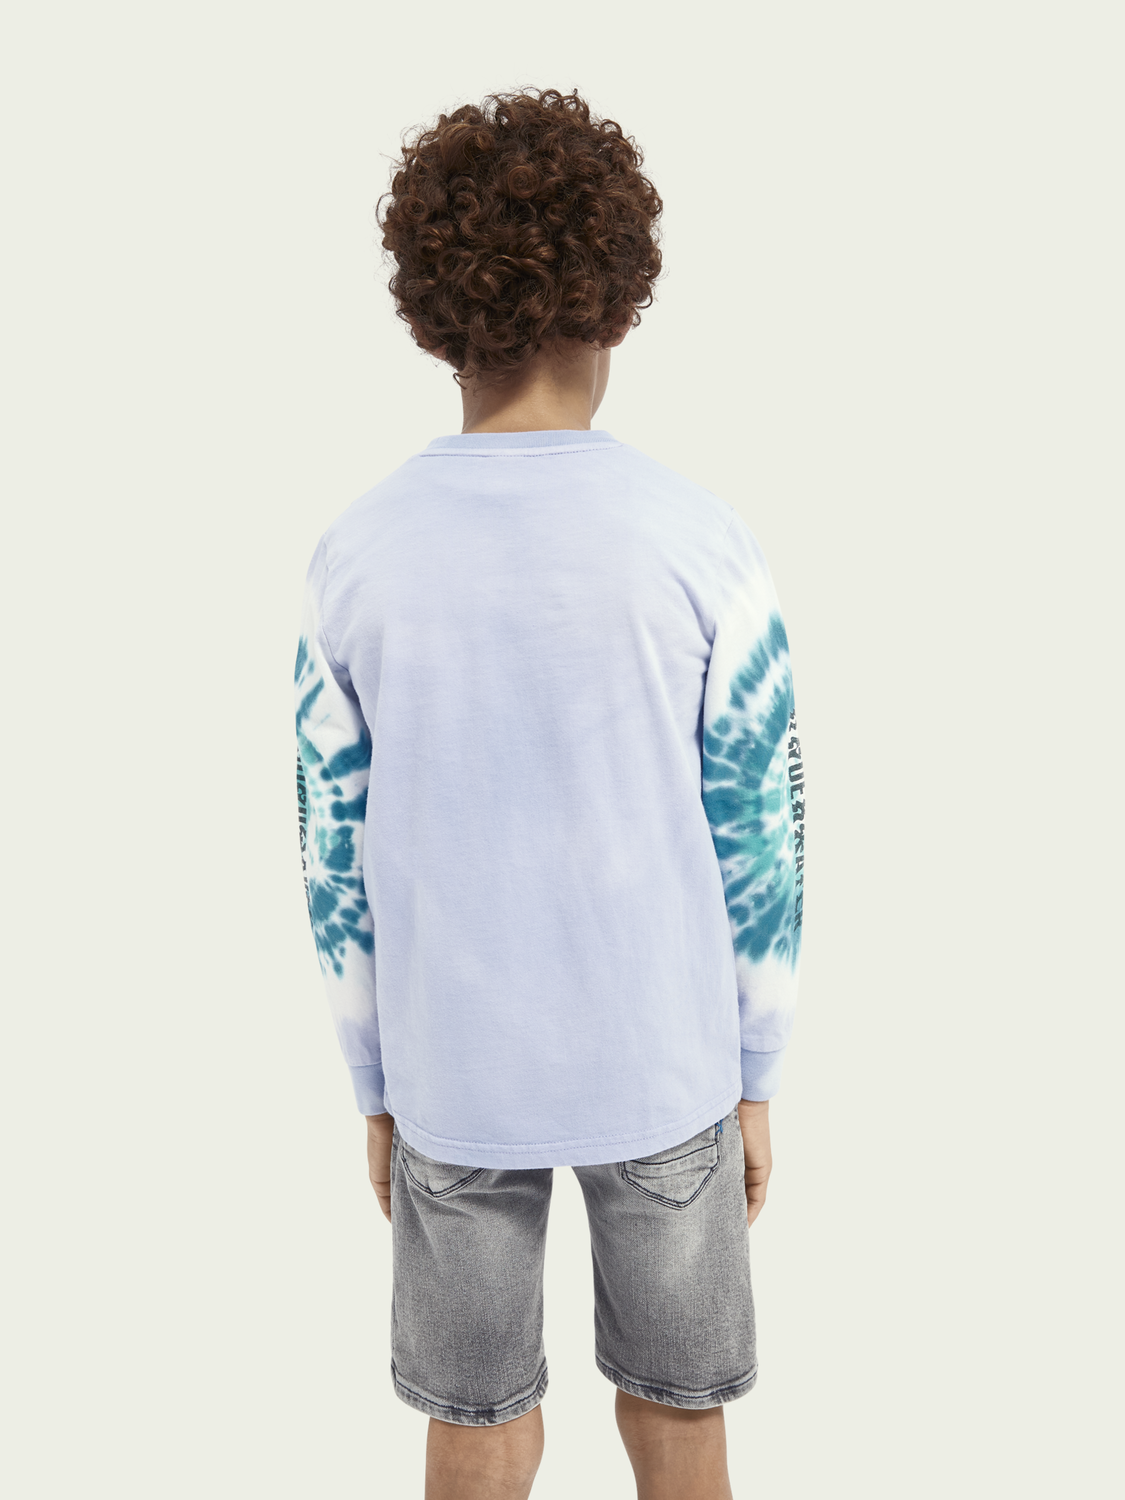 Kids Tie-dye cotton top